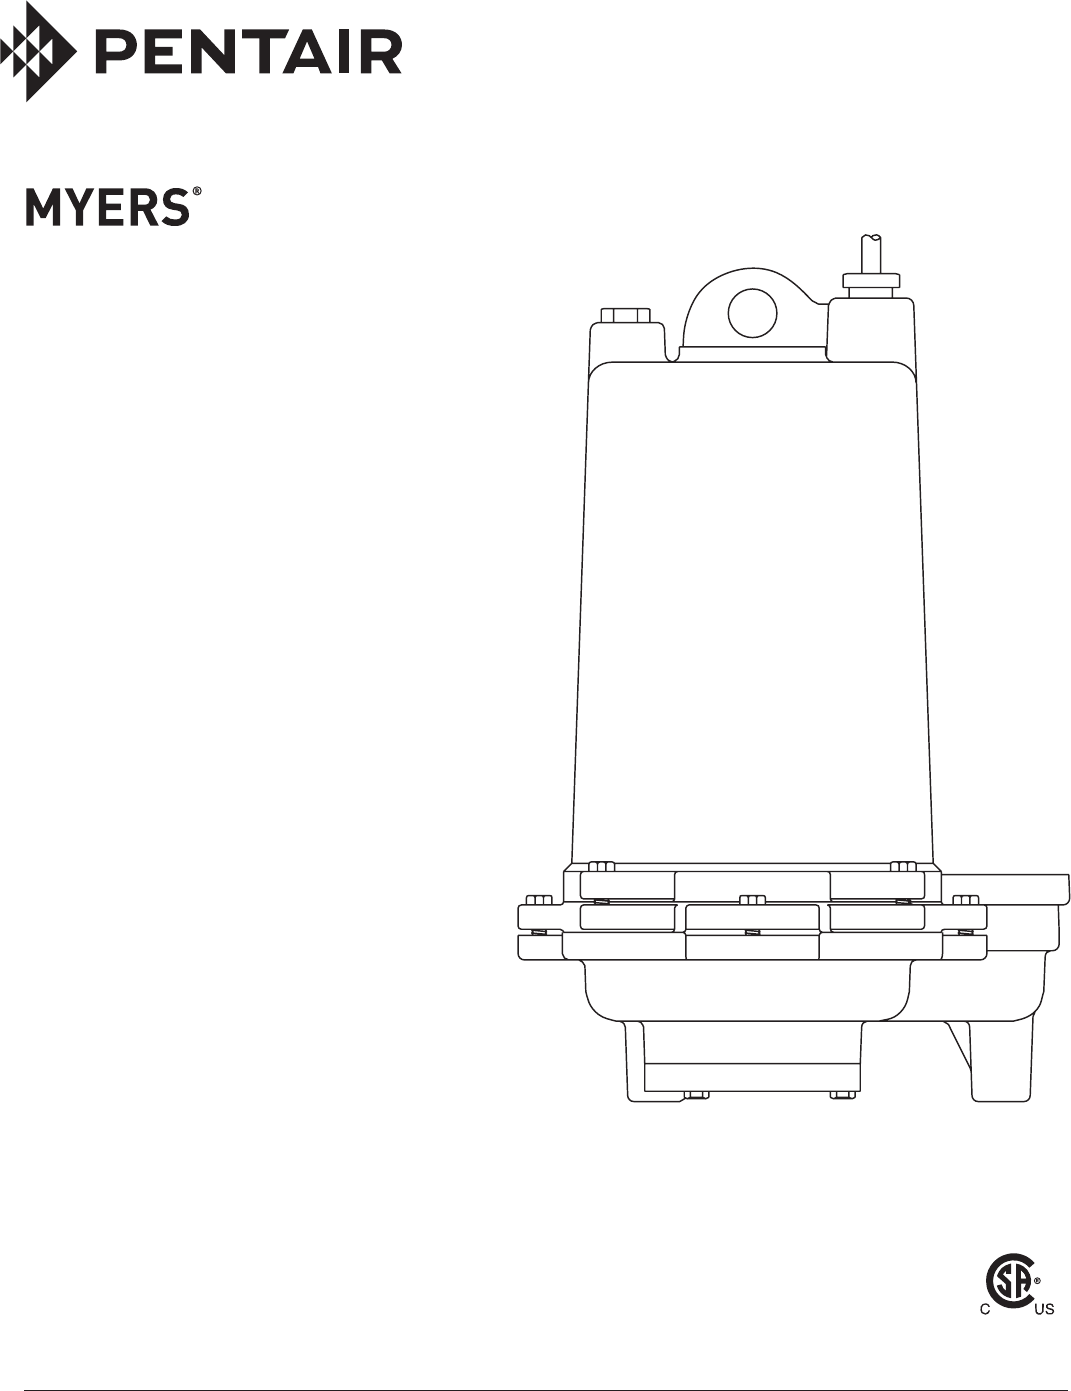 556676 1 Myers MG200 Grinder Pump Installation Manual on jet pump wiring diagram, water pump wiring diagram, grinder pump repair, grinder pump system, grinder pump plug, booster pump wiring diagram, grinder pump electrical, hydraulic pump wiring diagram, grinder pump cover, grinder pump circuit, vacuum pump wiring diagram, diaphragm pump wiring diagram, sewer pump wiring diagram, grinder pump schematics, well pump wiring diagram, sump pump wiring diagram, submersible pump wiring diagram, grinder pumps for septic tanks, condensate pump wiring diagram, fire pump wiring diagram,